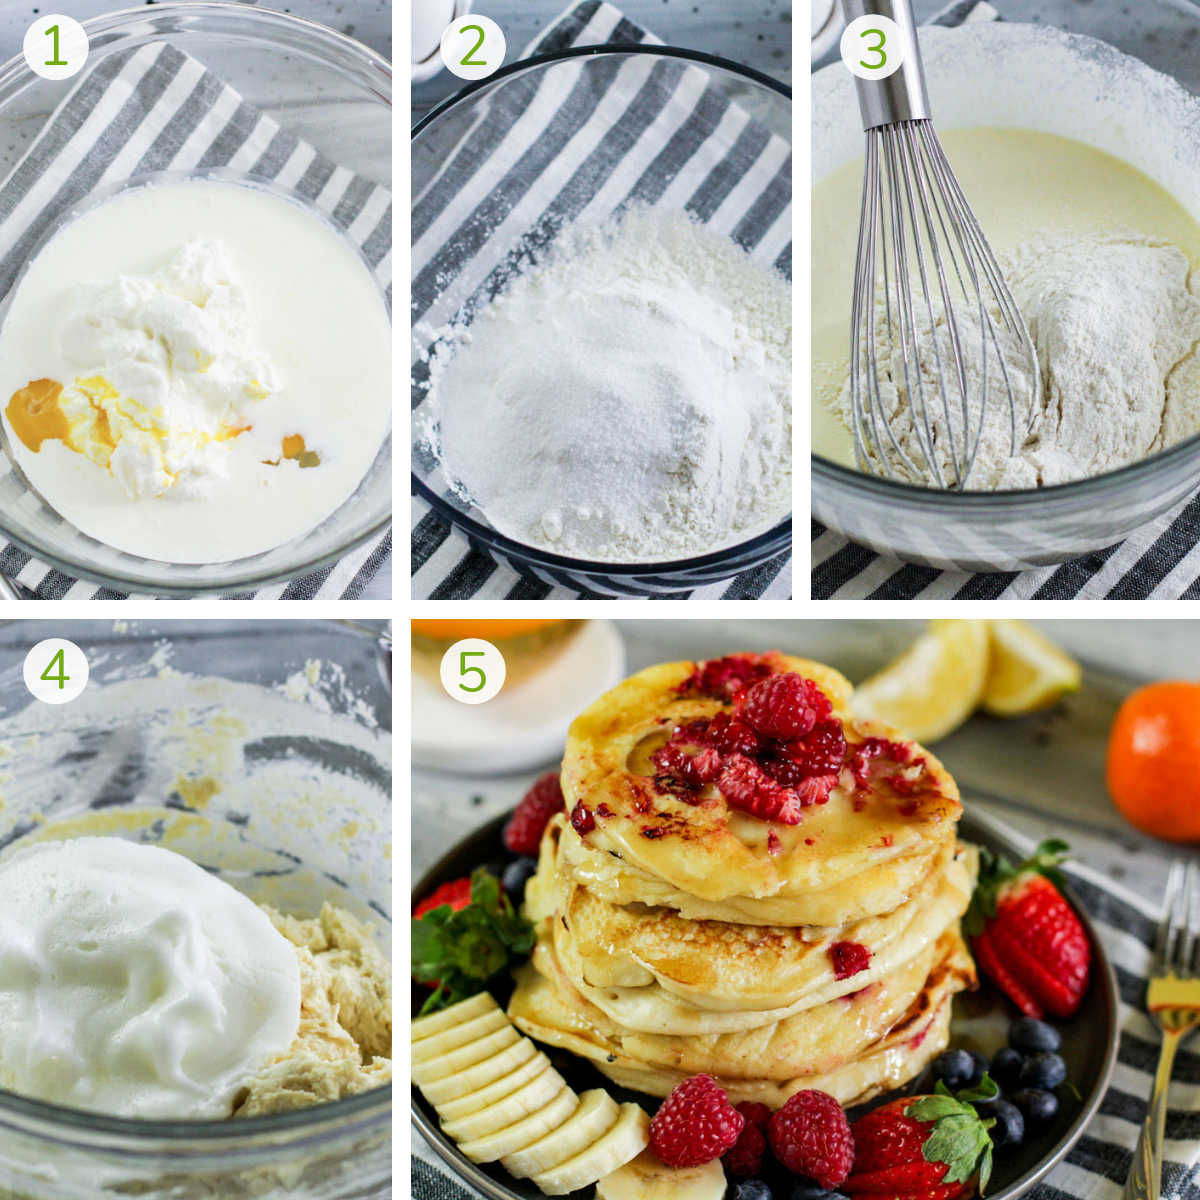 several process photos showing how to combine the ingredients to make pancakes.